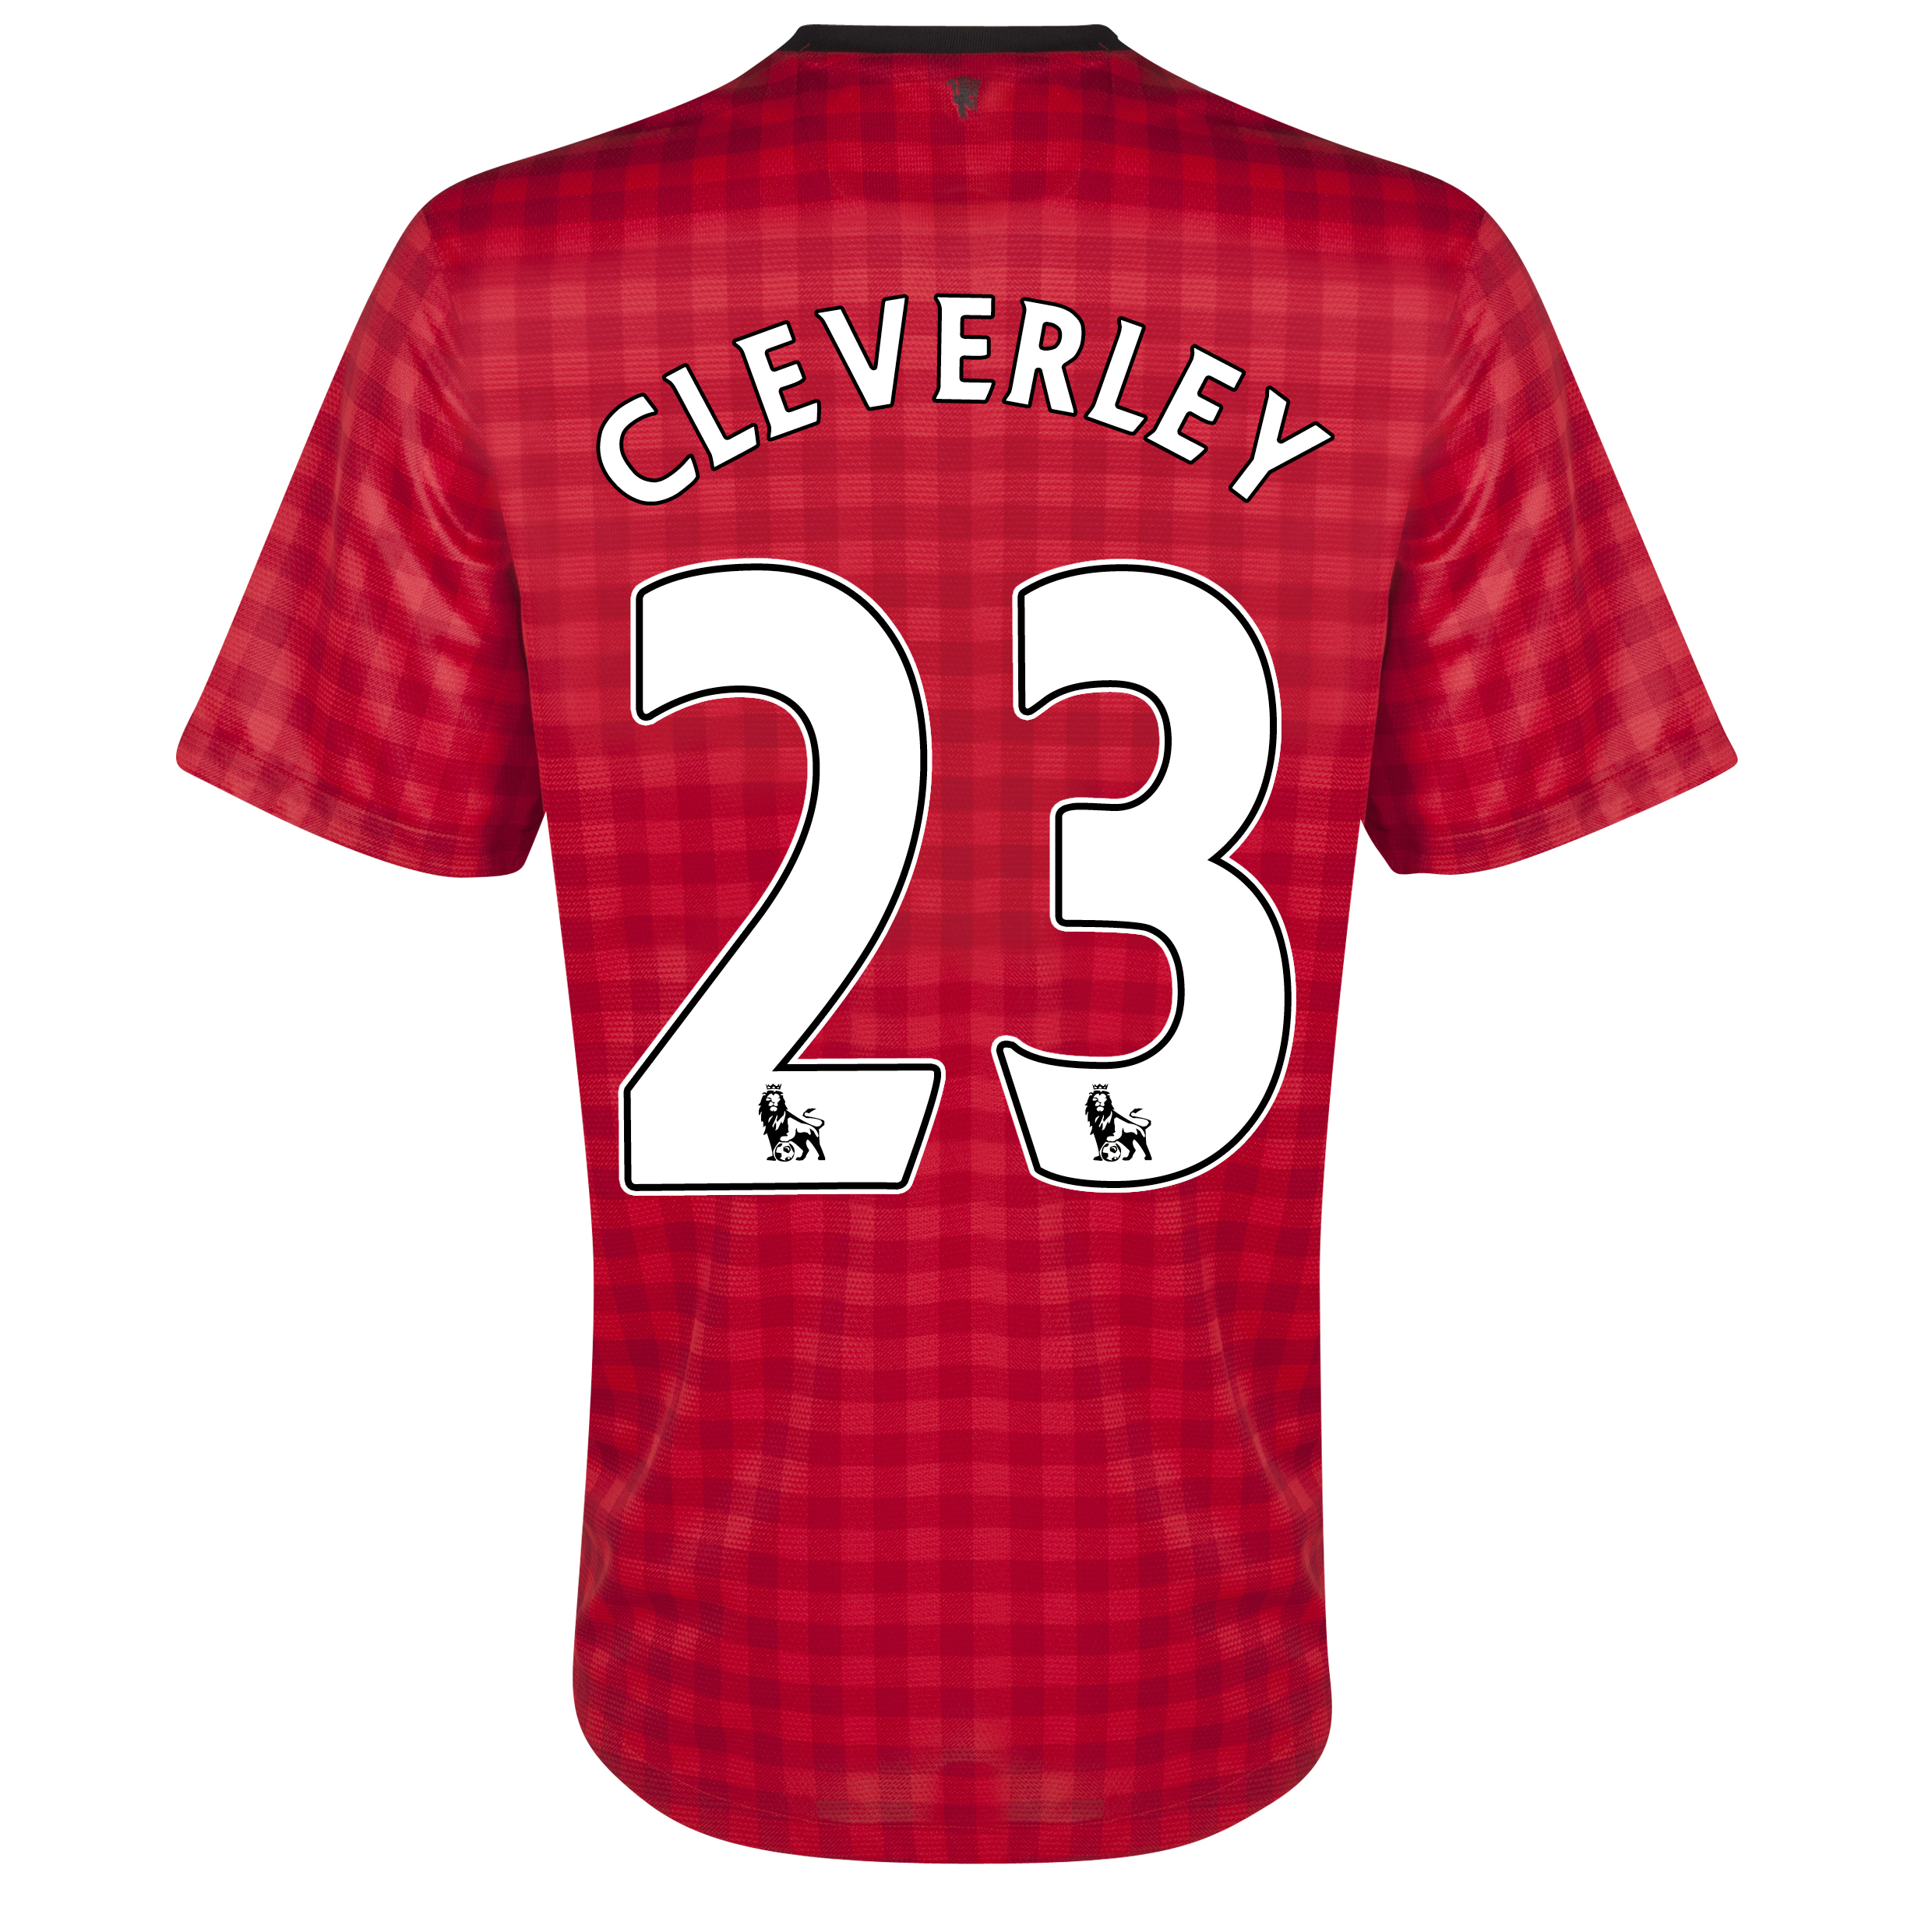 Manchester United Home Shirt 2012/13 - Kids with Cleverley 23 printing